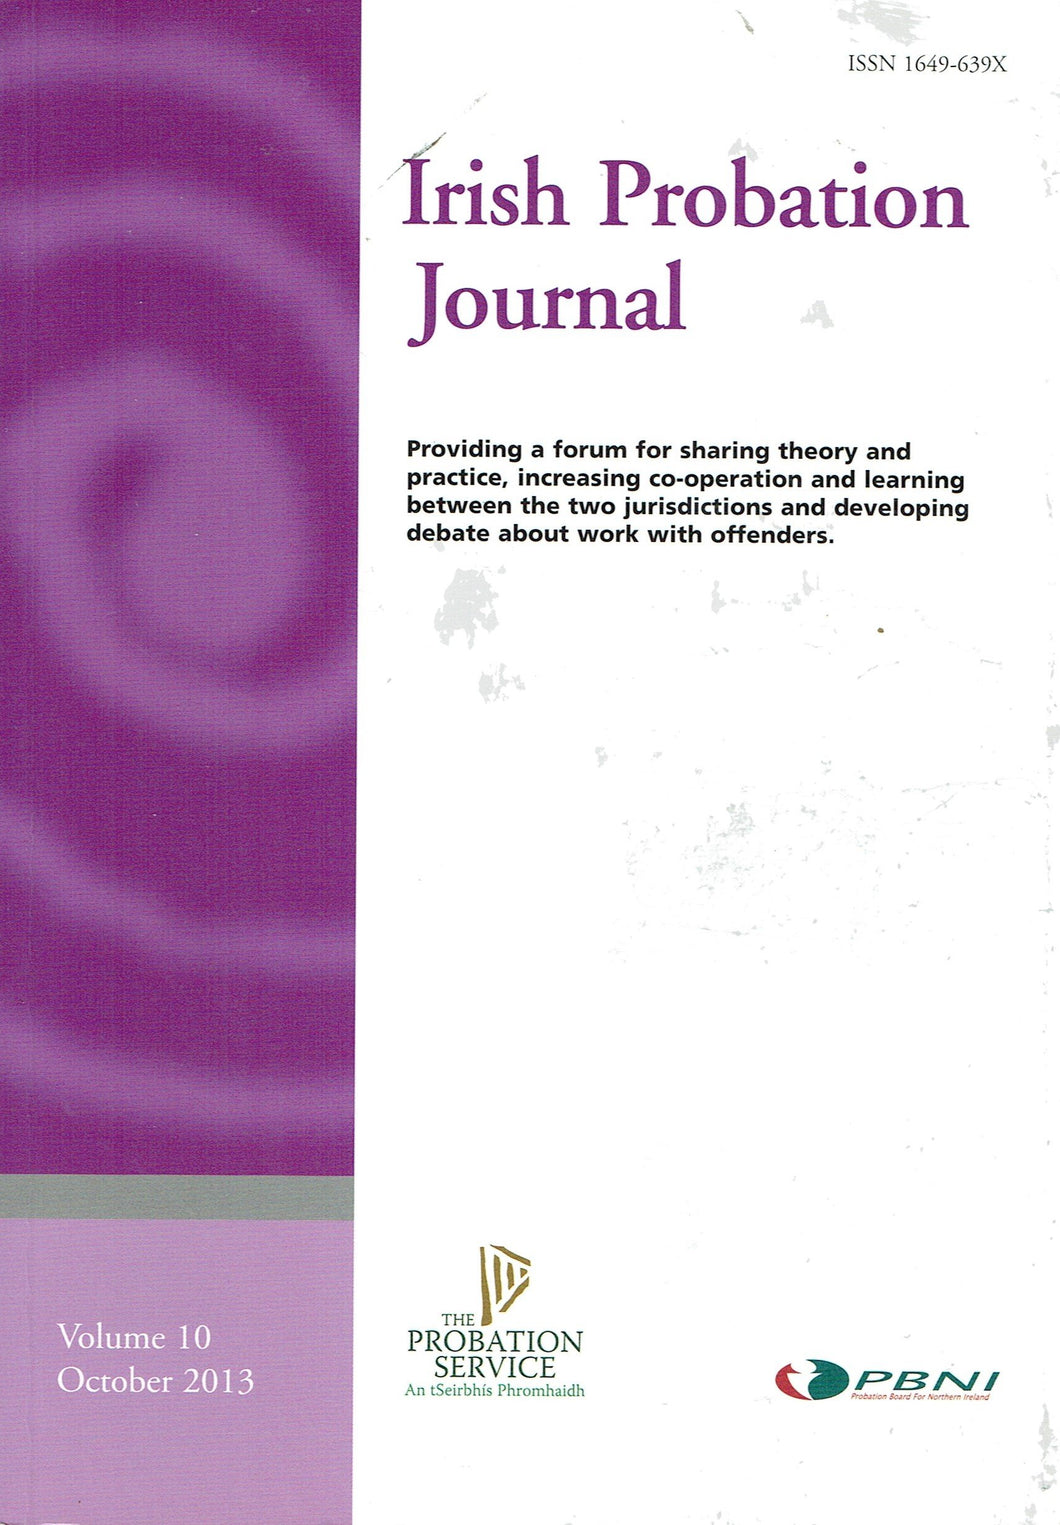 Irish Probation Journal - Volume 10, October 2013